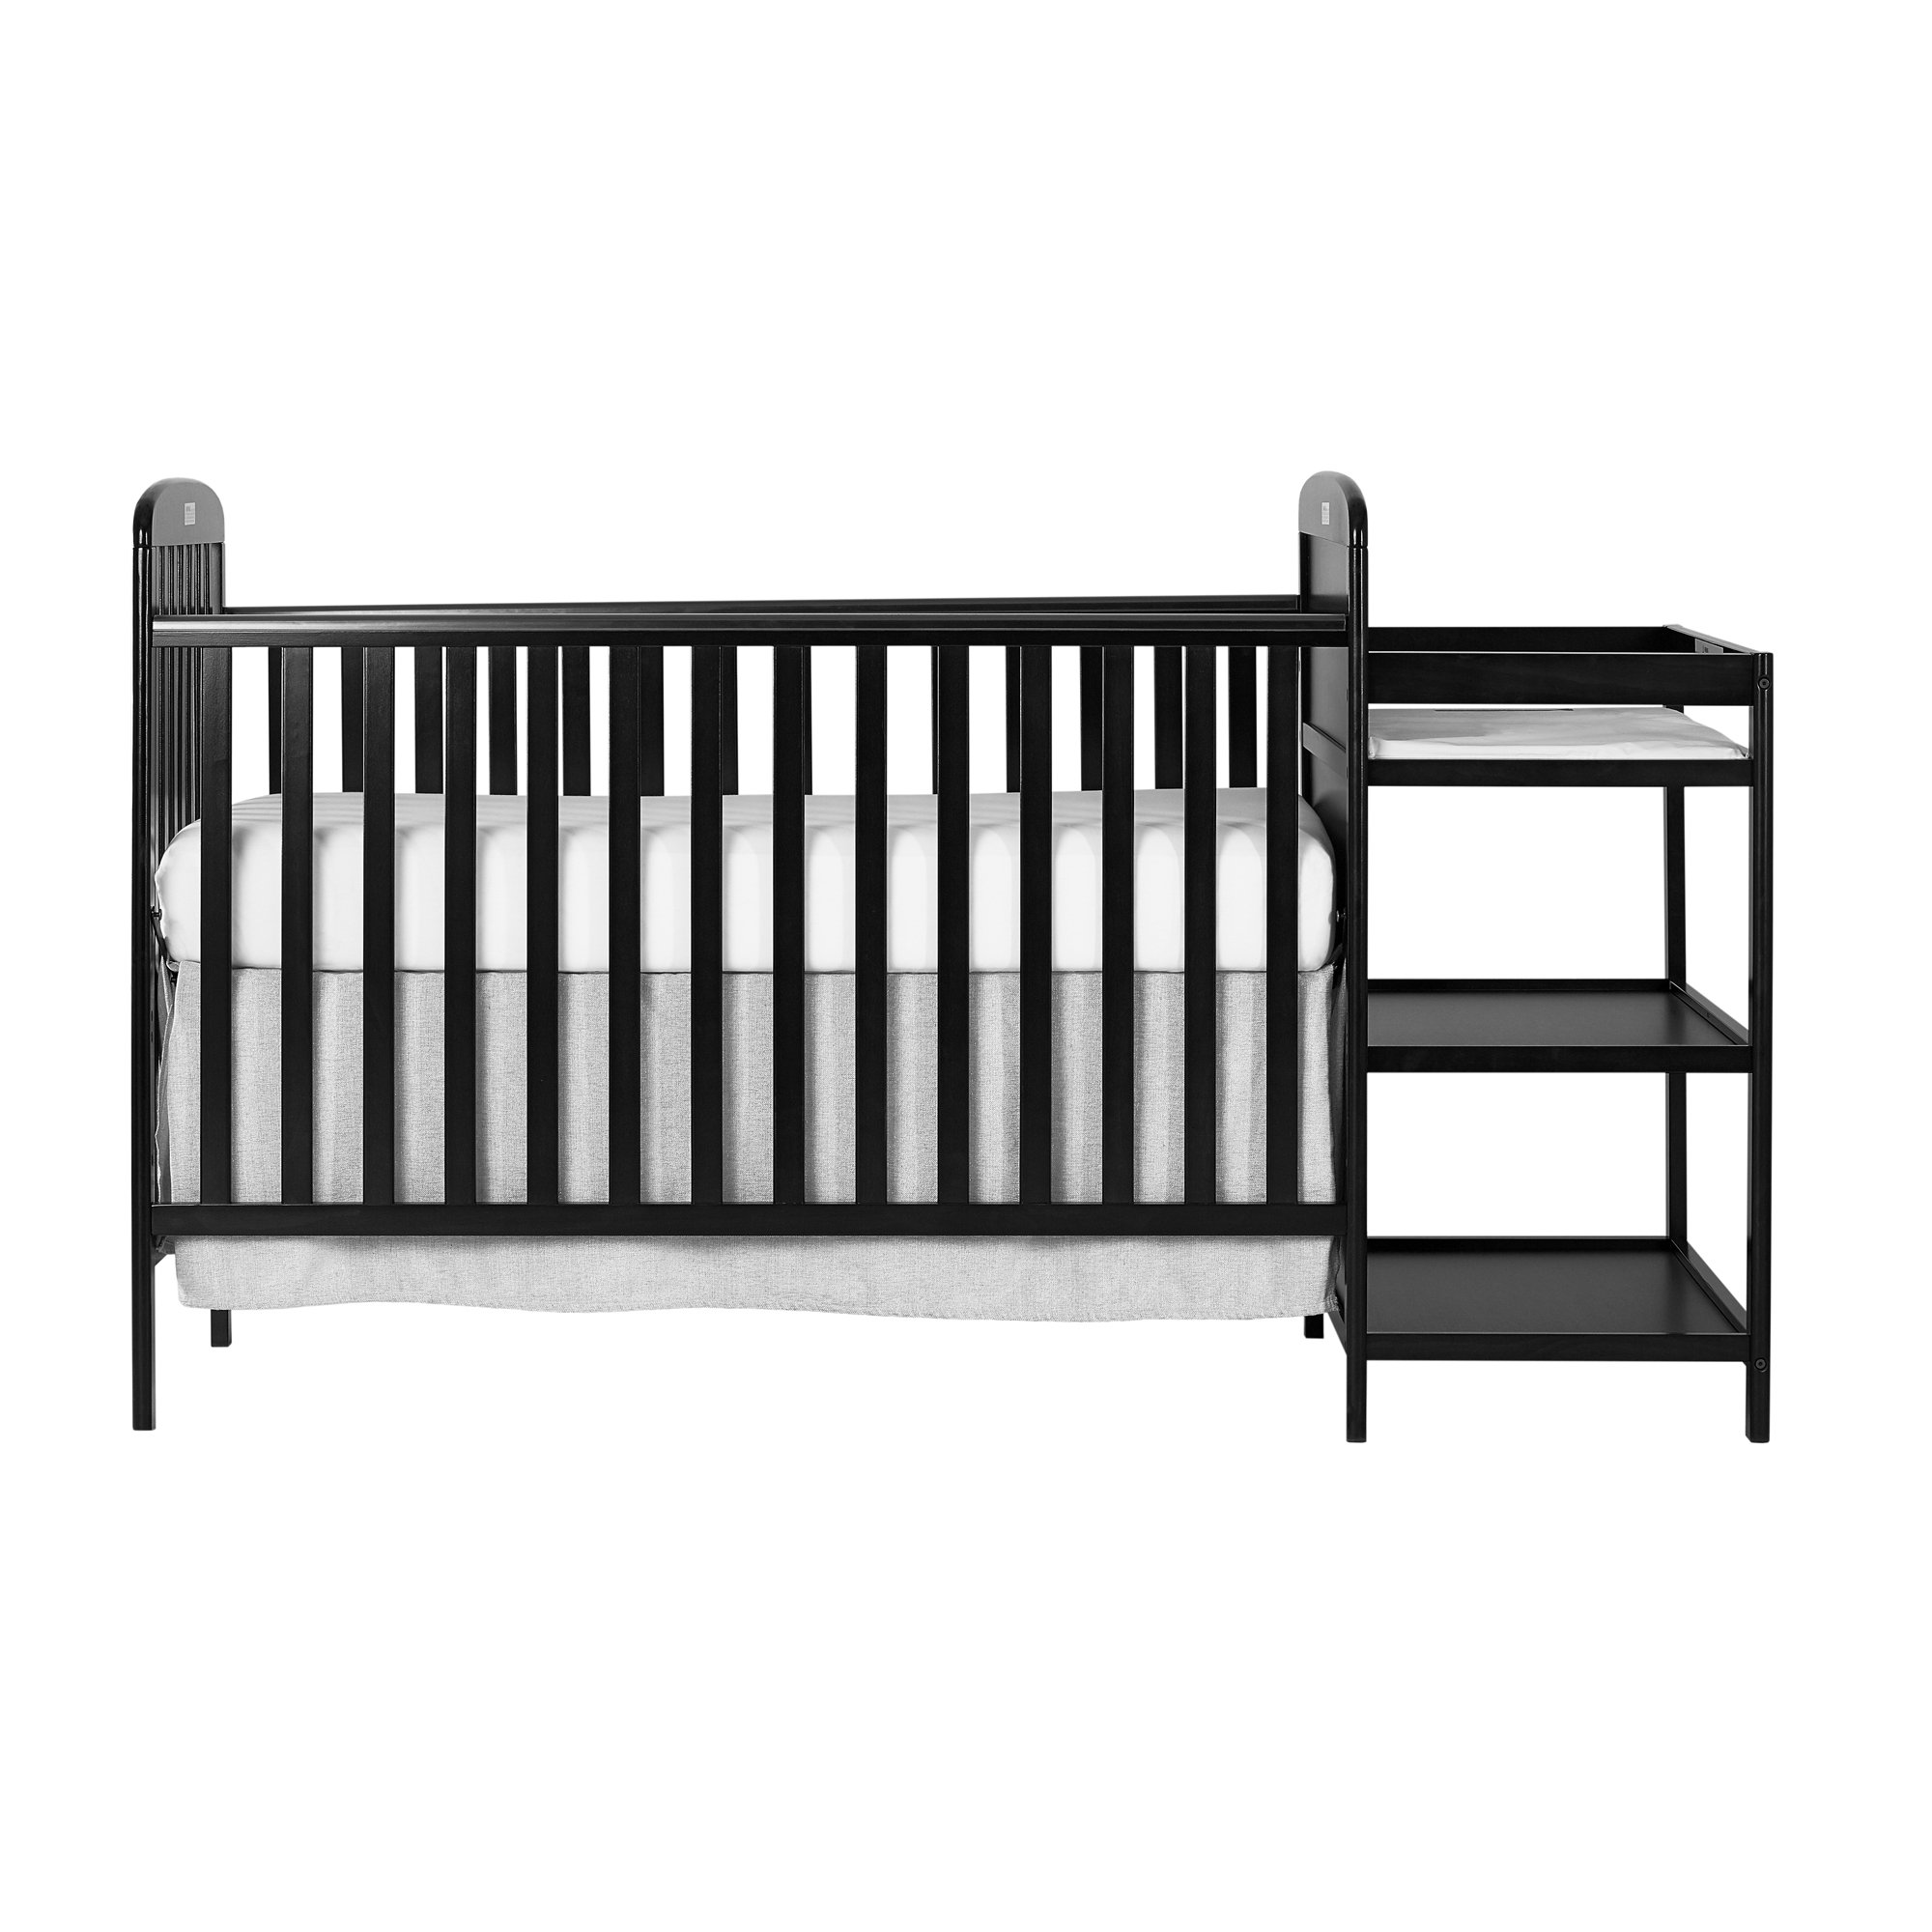 Dream On Me, Anna 4 in 1 Full Size Crib and Changing Table Combo, Black, ONE Size